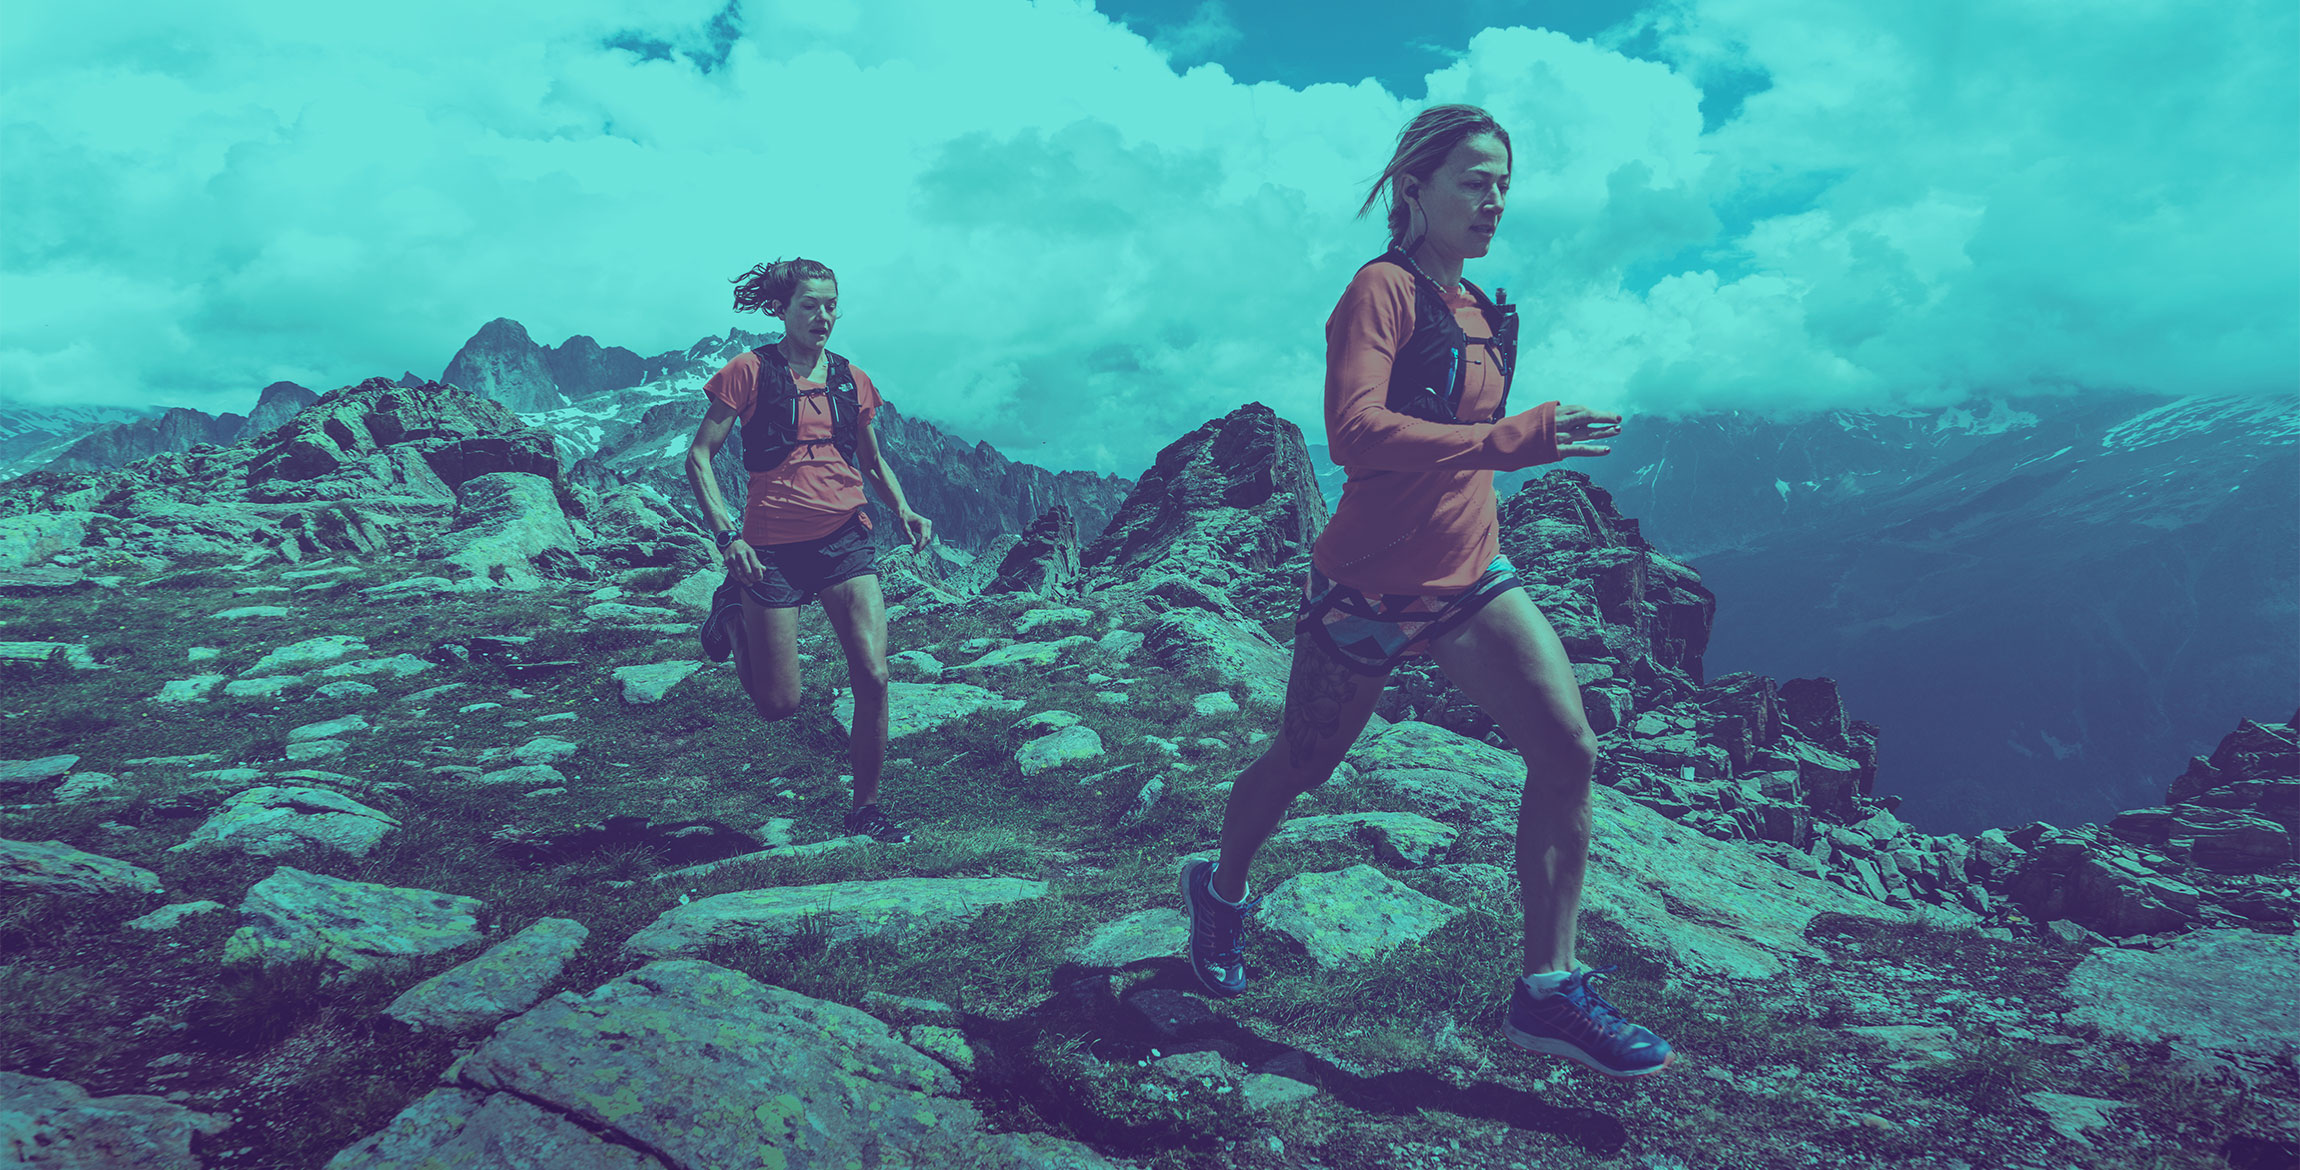 Weekly Fourcast: Trail Running